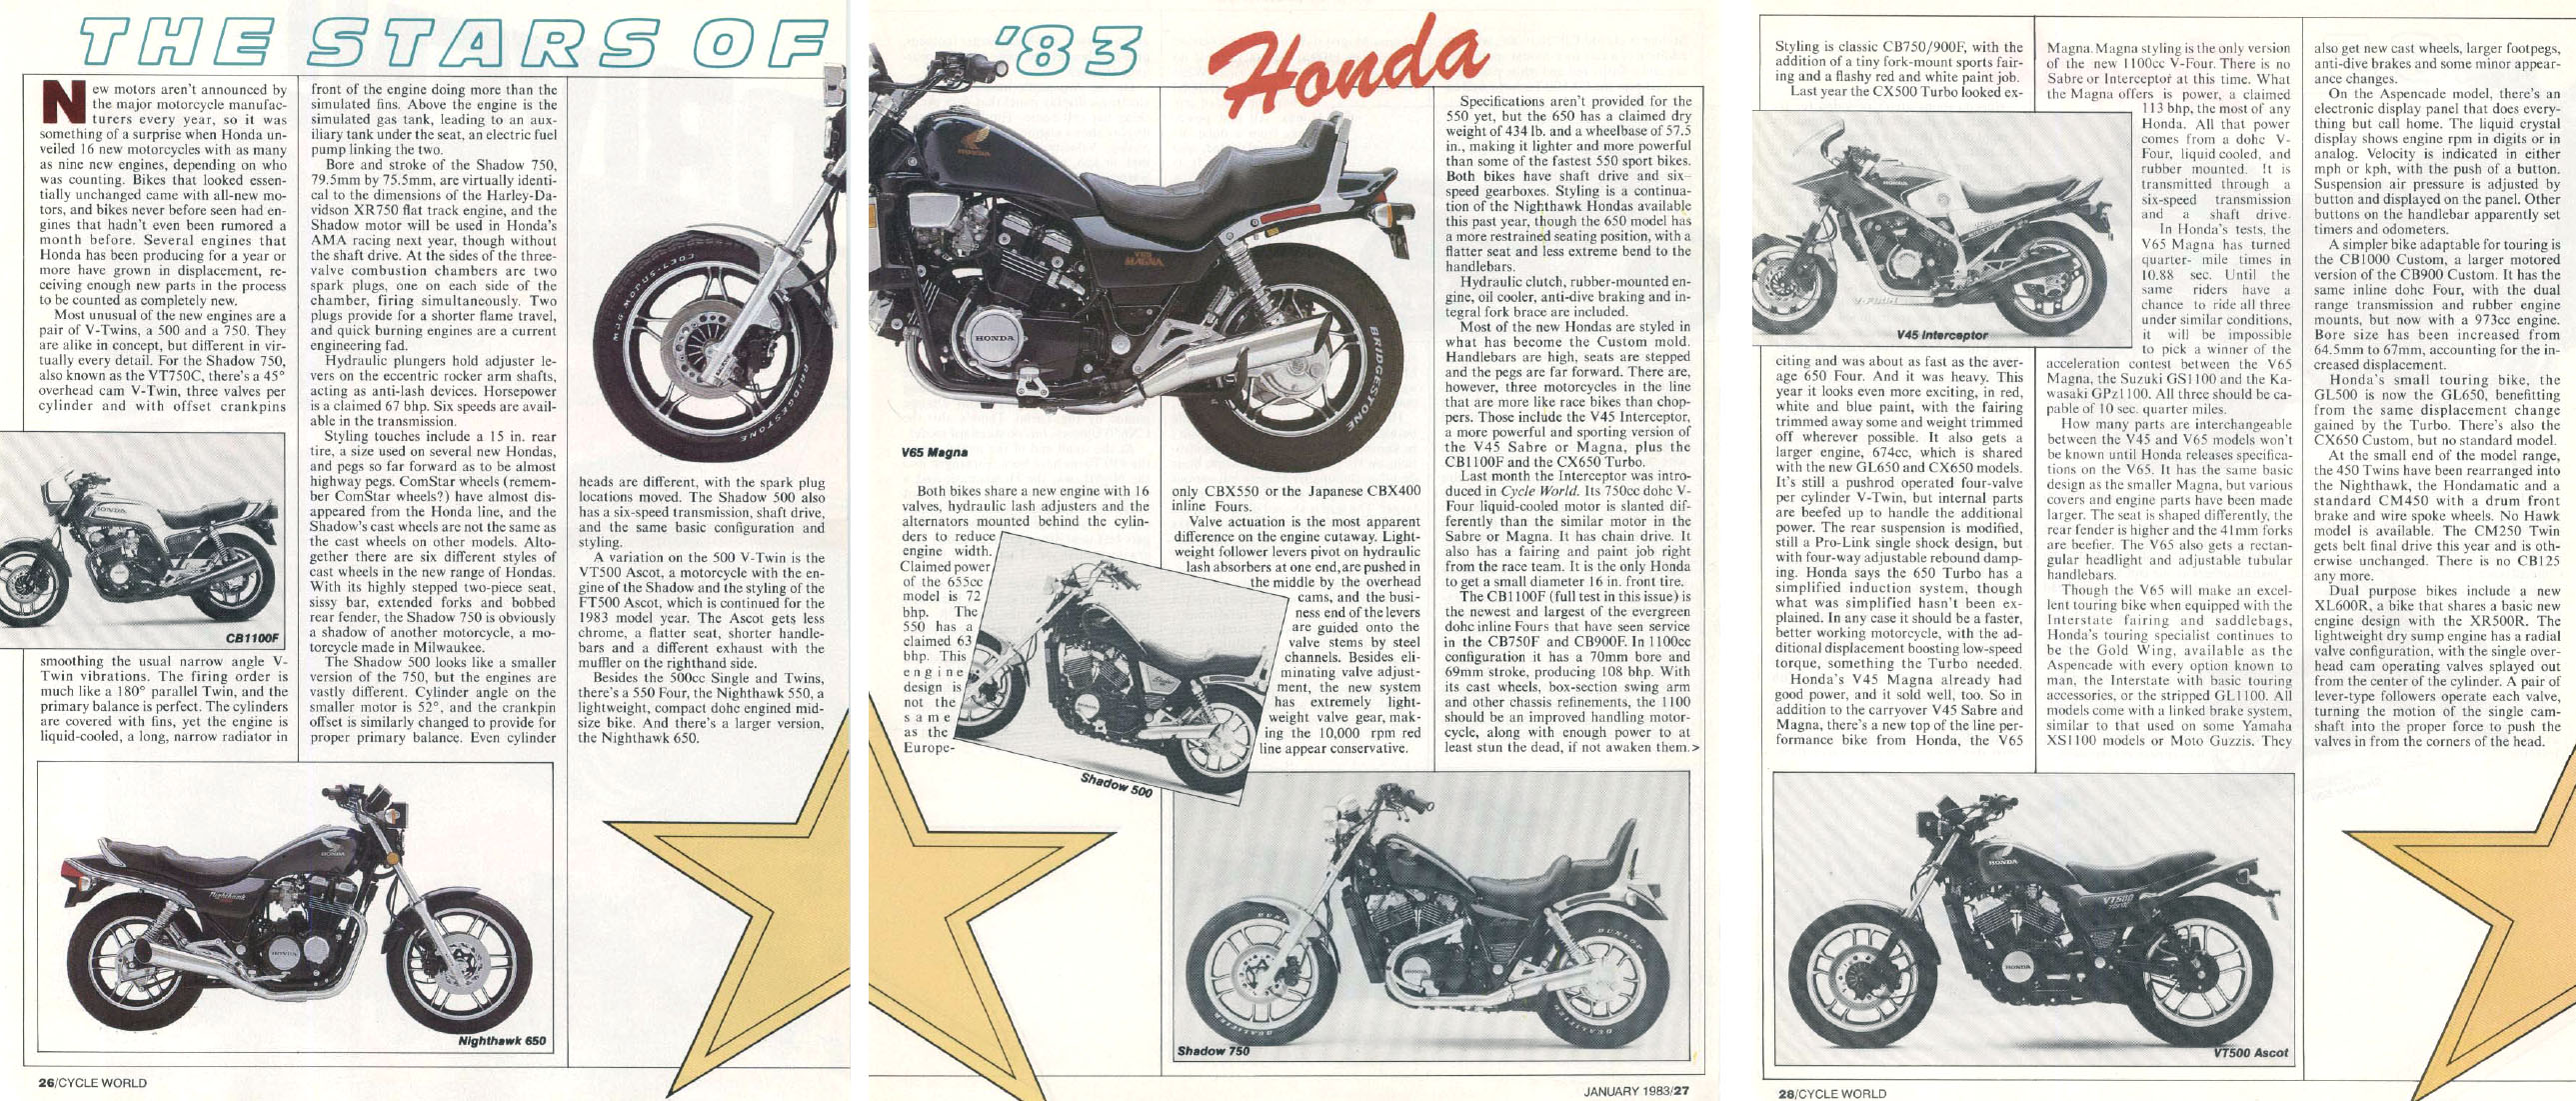 """Stars of Honda 1983"" with short write up of V65 Magna"